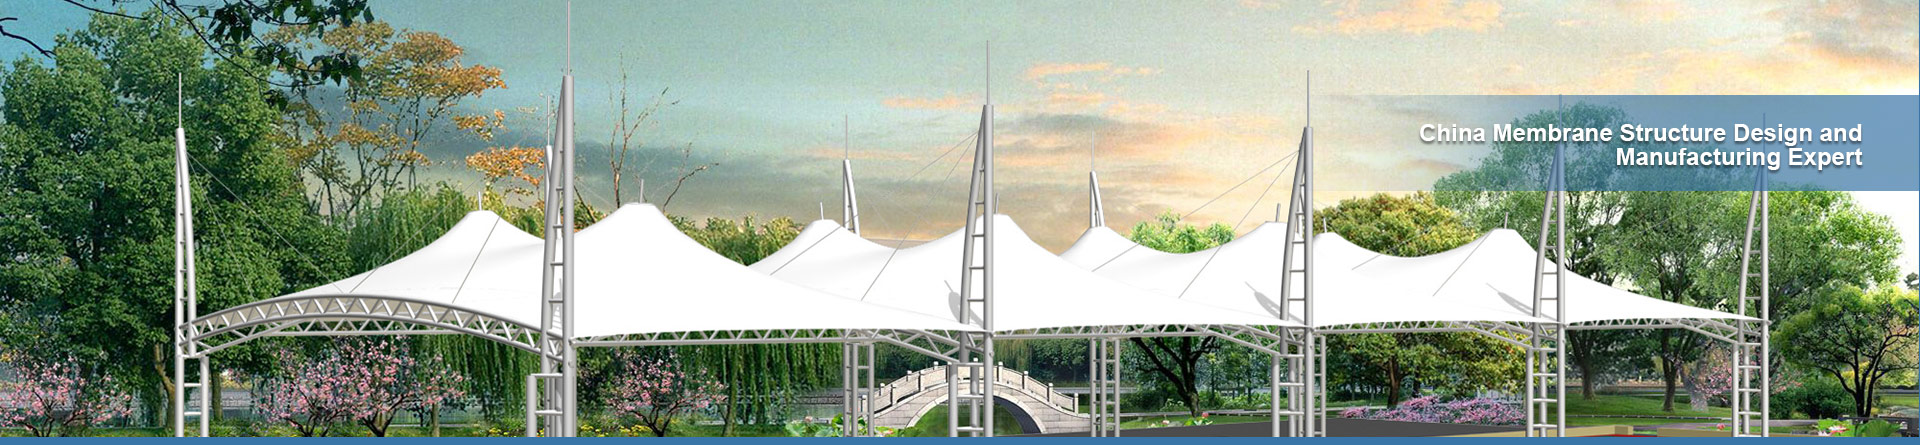 ETFE Transparent Membrane Structure